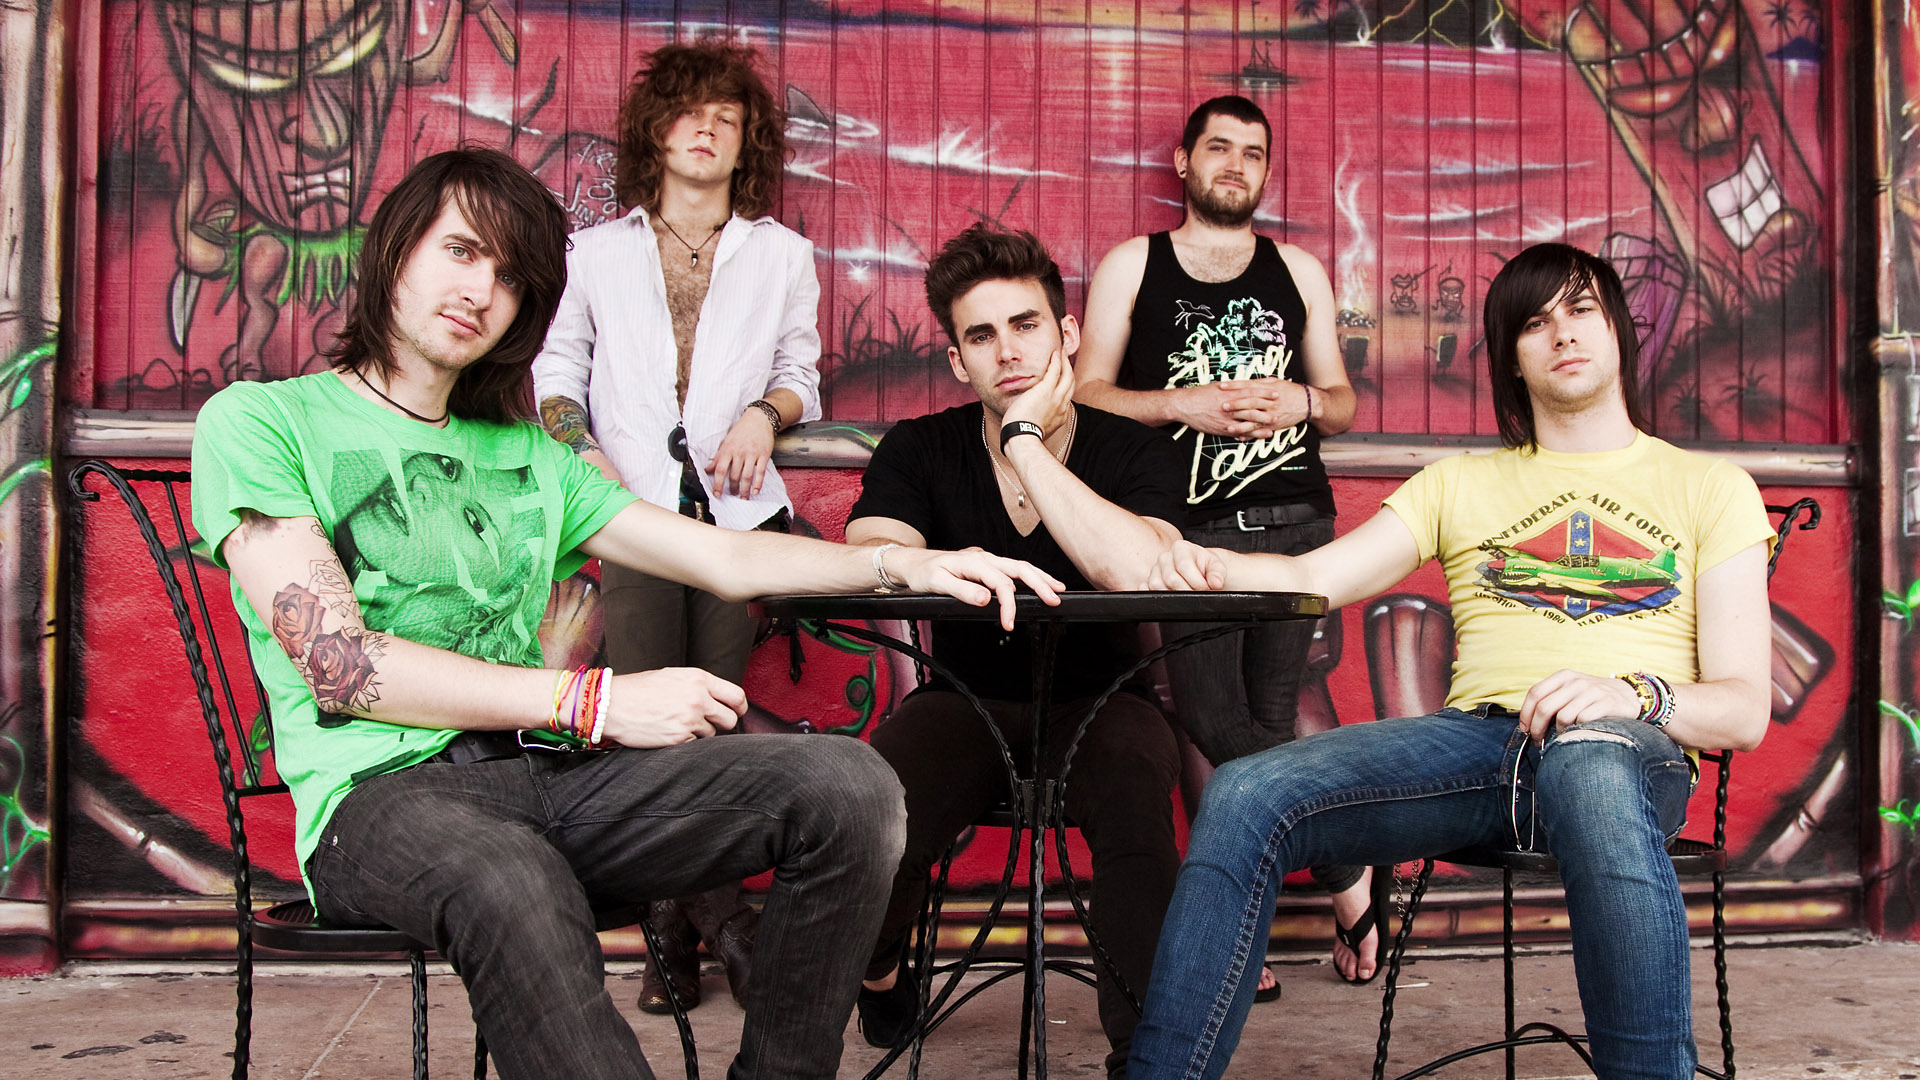 8 HD Mayday Parade Band Wallpapers - HDWallSource com